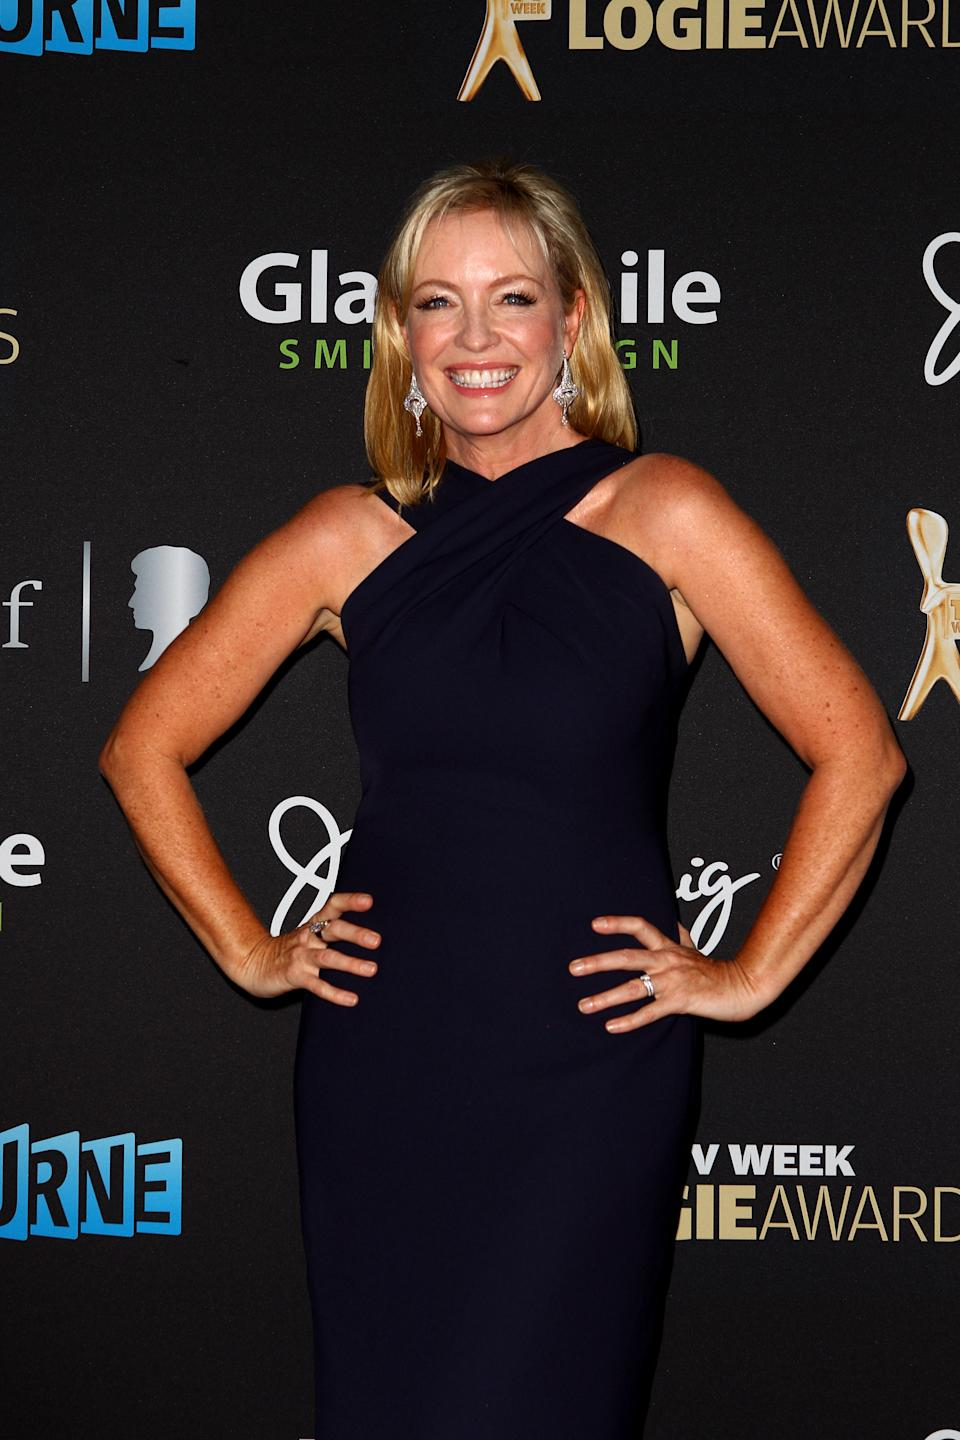 Actress Rebecca Gibney arrives at the 2012 Logie Awards at the Crown Palladium on April 15, 2012 in Melbourne, Australia